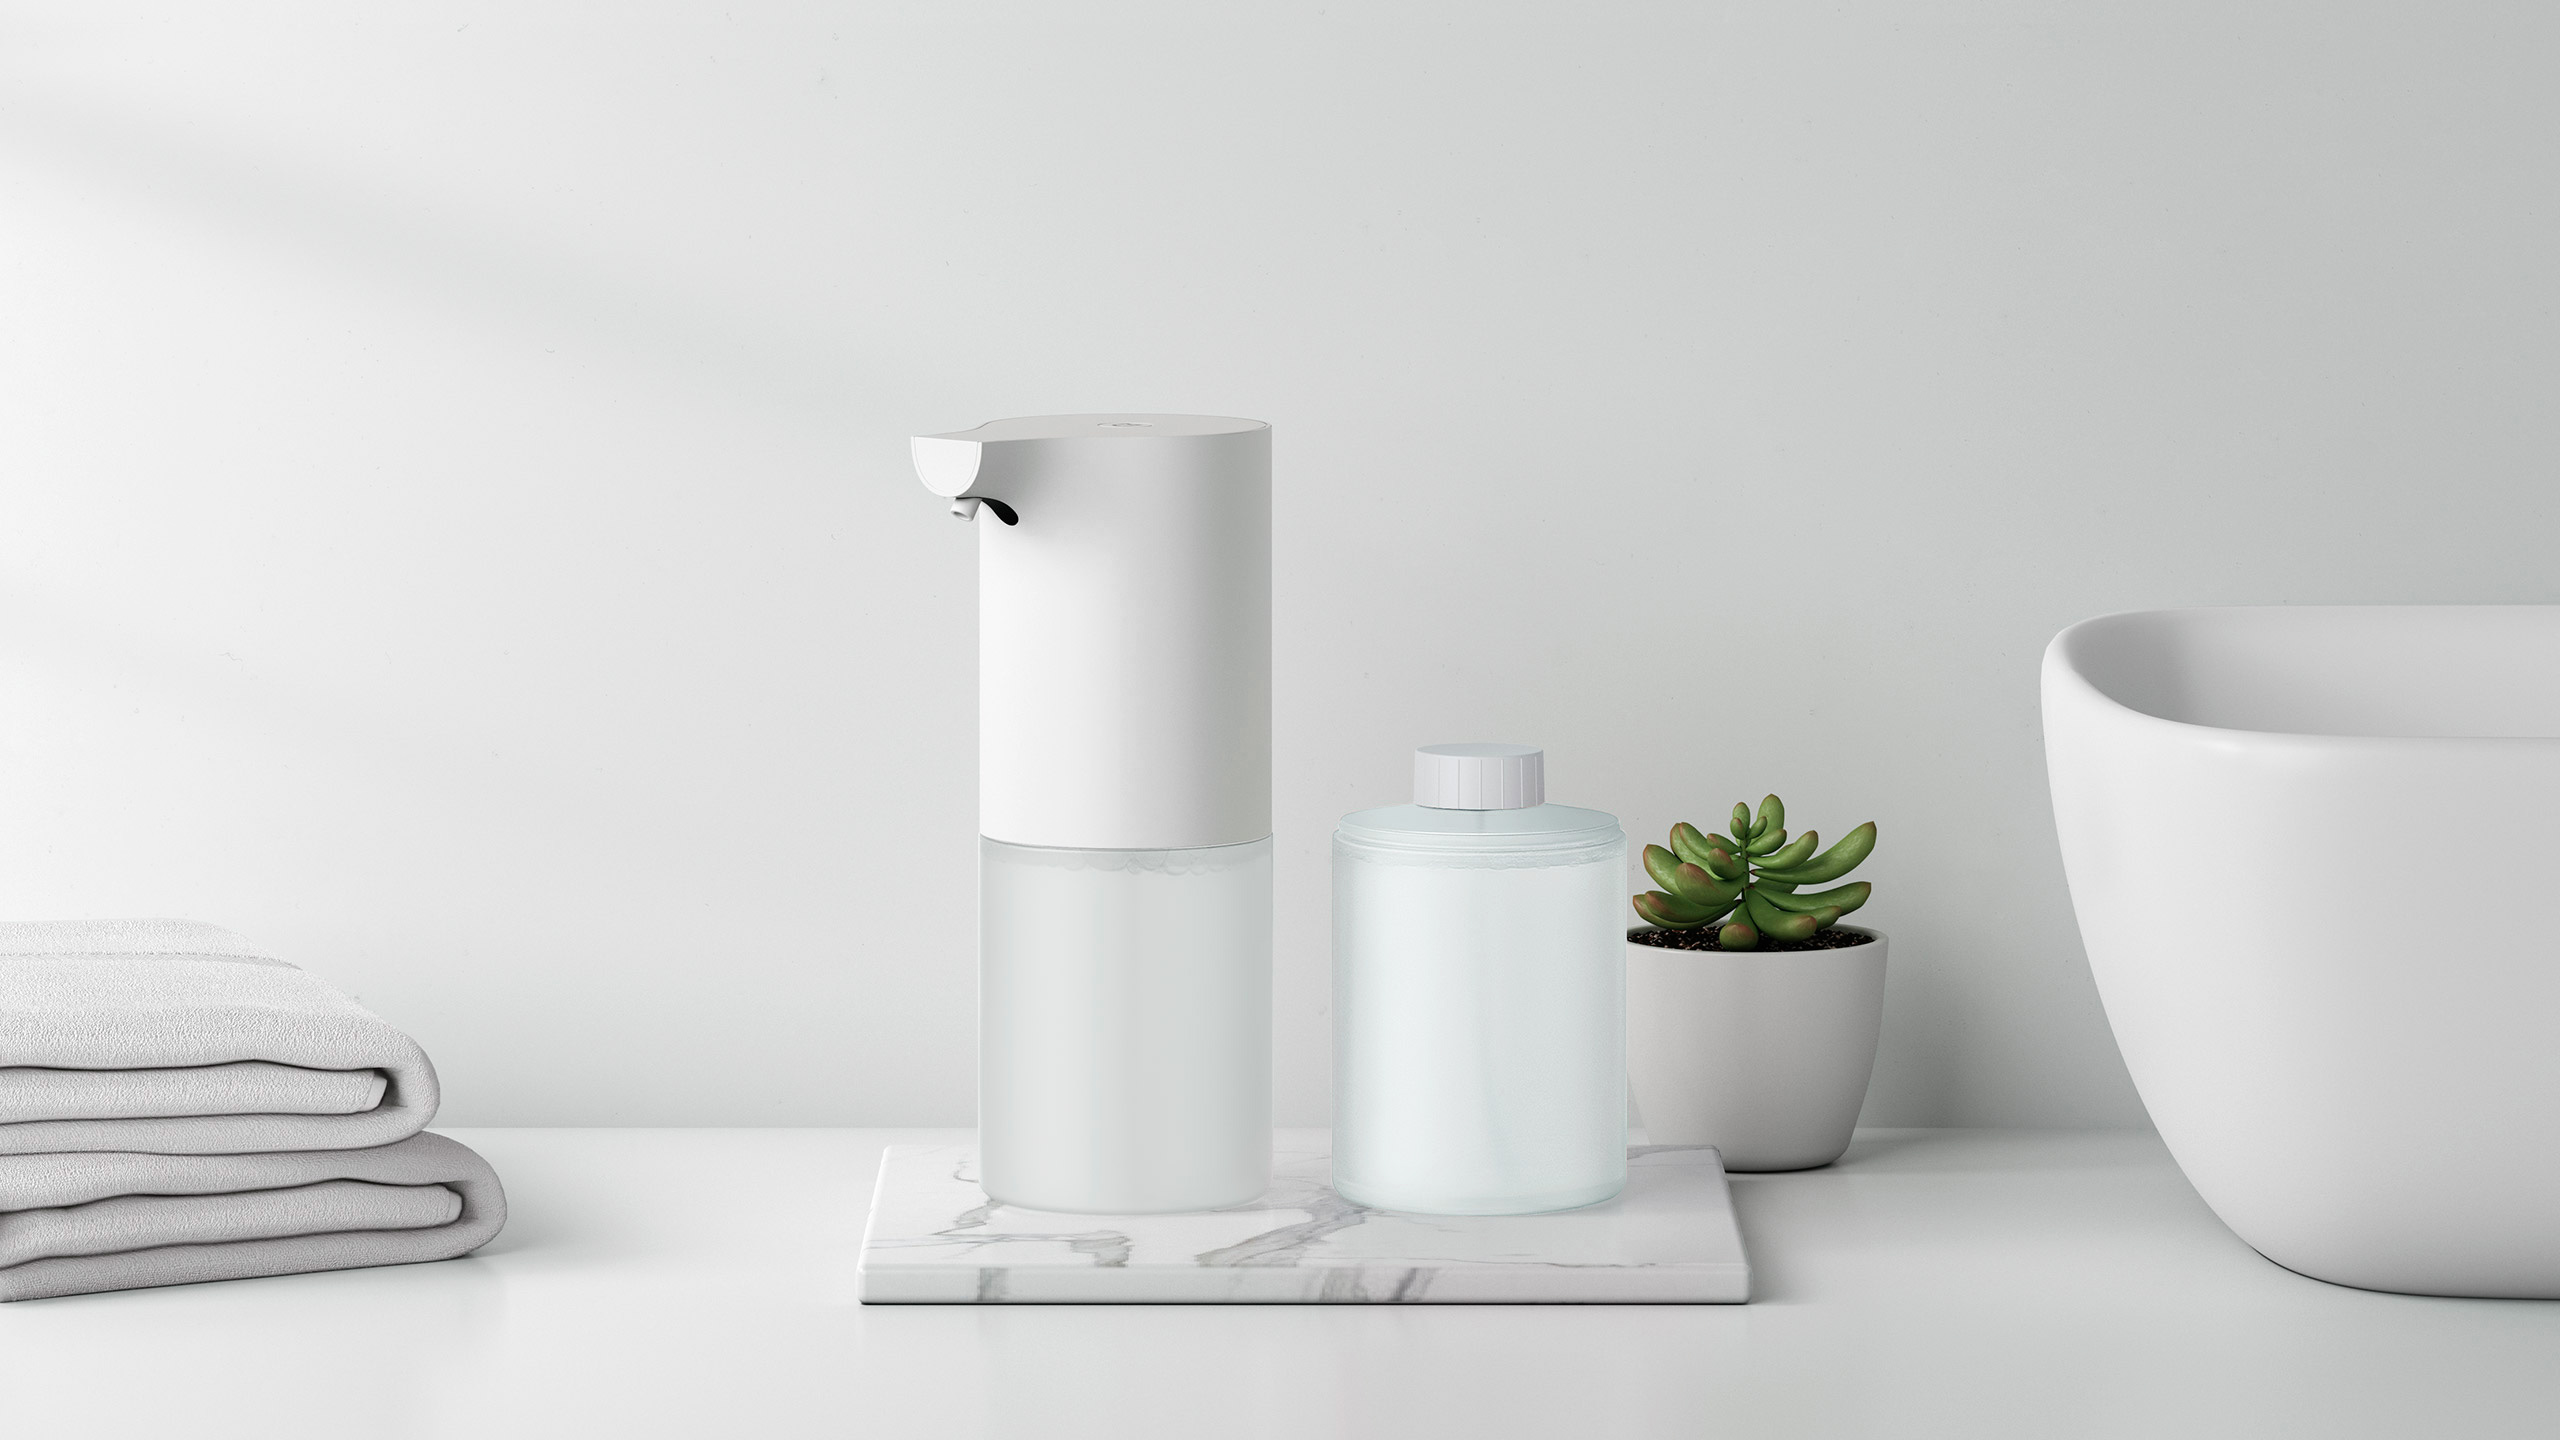 Сенсорная мыльница Xiaomi Mijia Automatic Foam Soap Dispenser